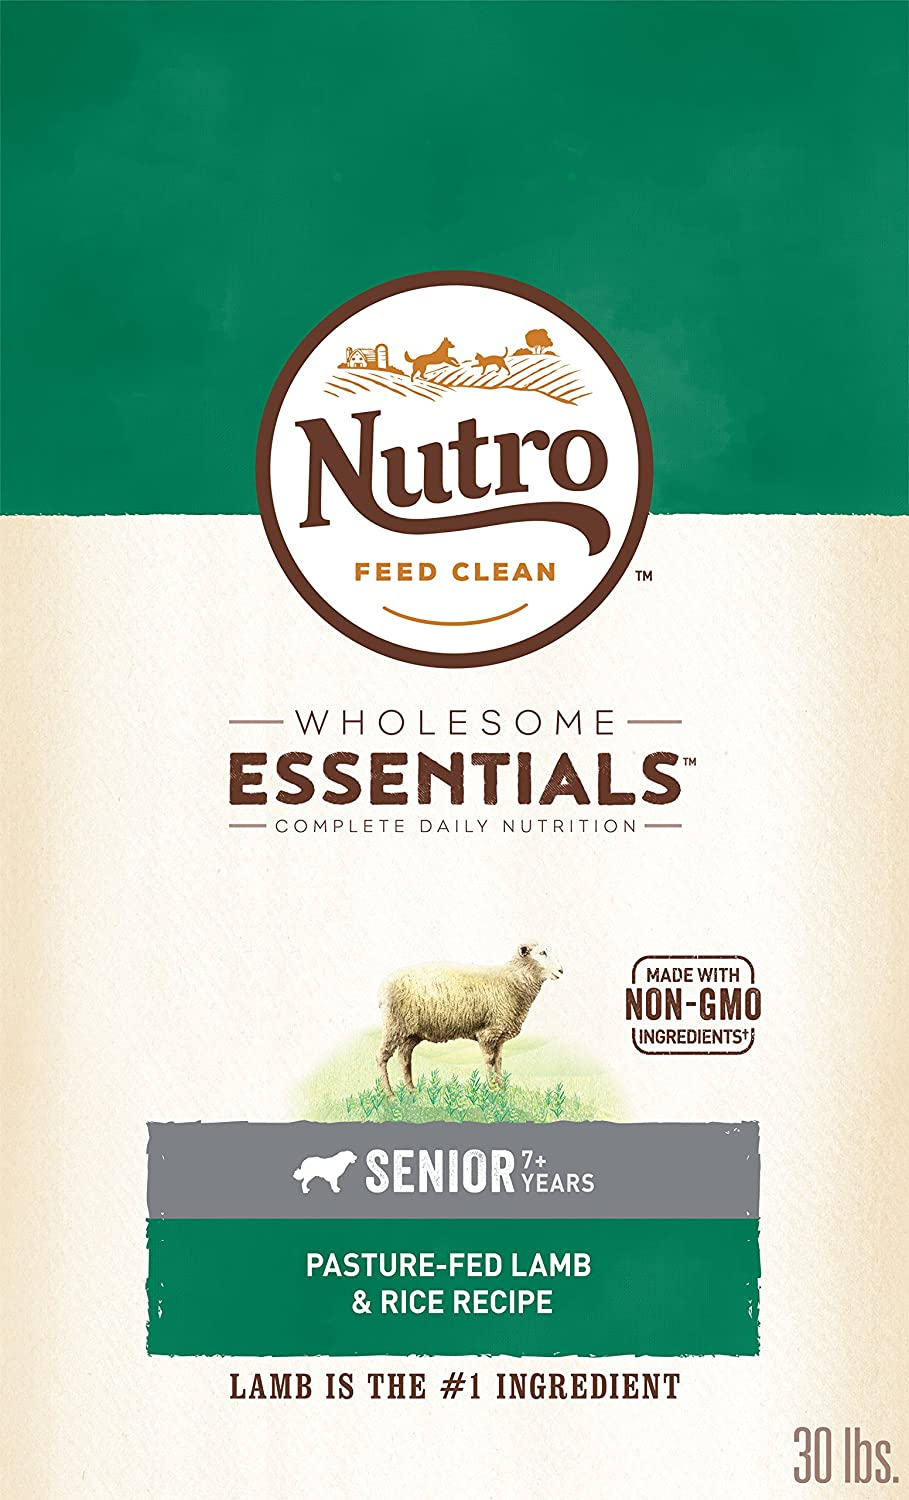 Nutro Wholesome Essentials Dry Food for Dogs 10157644